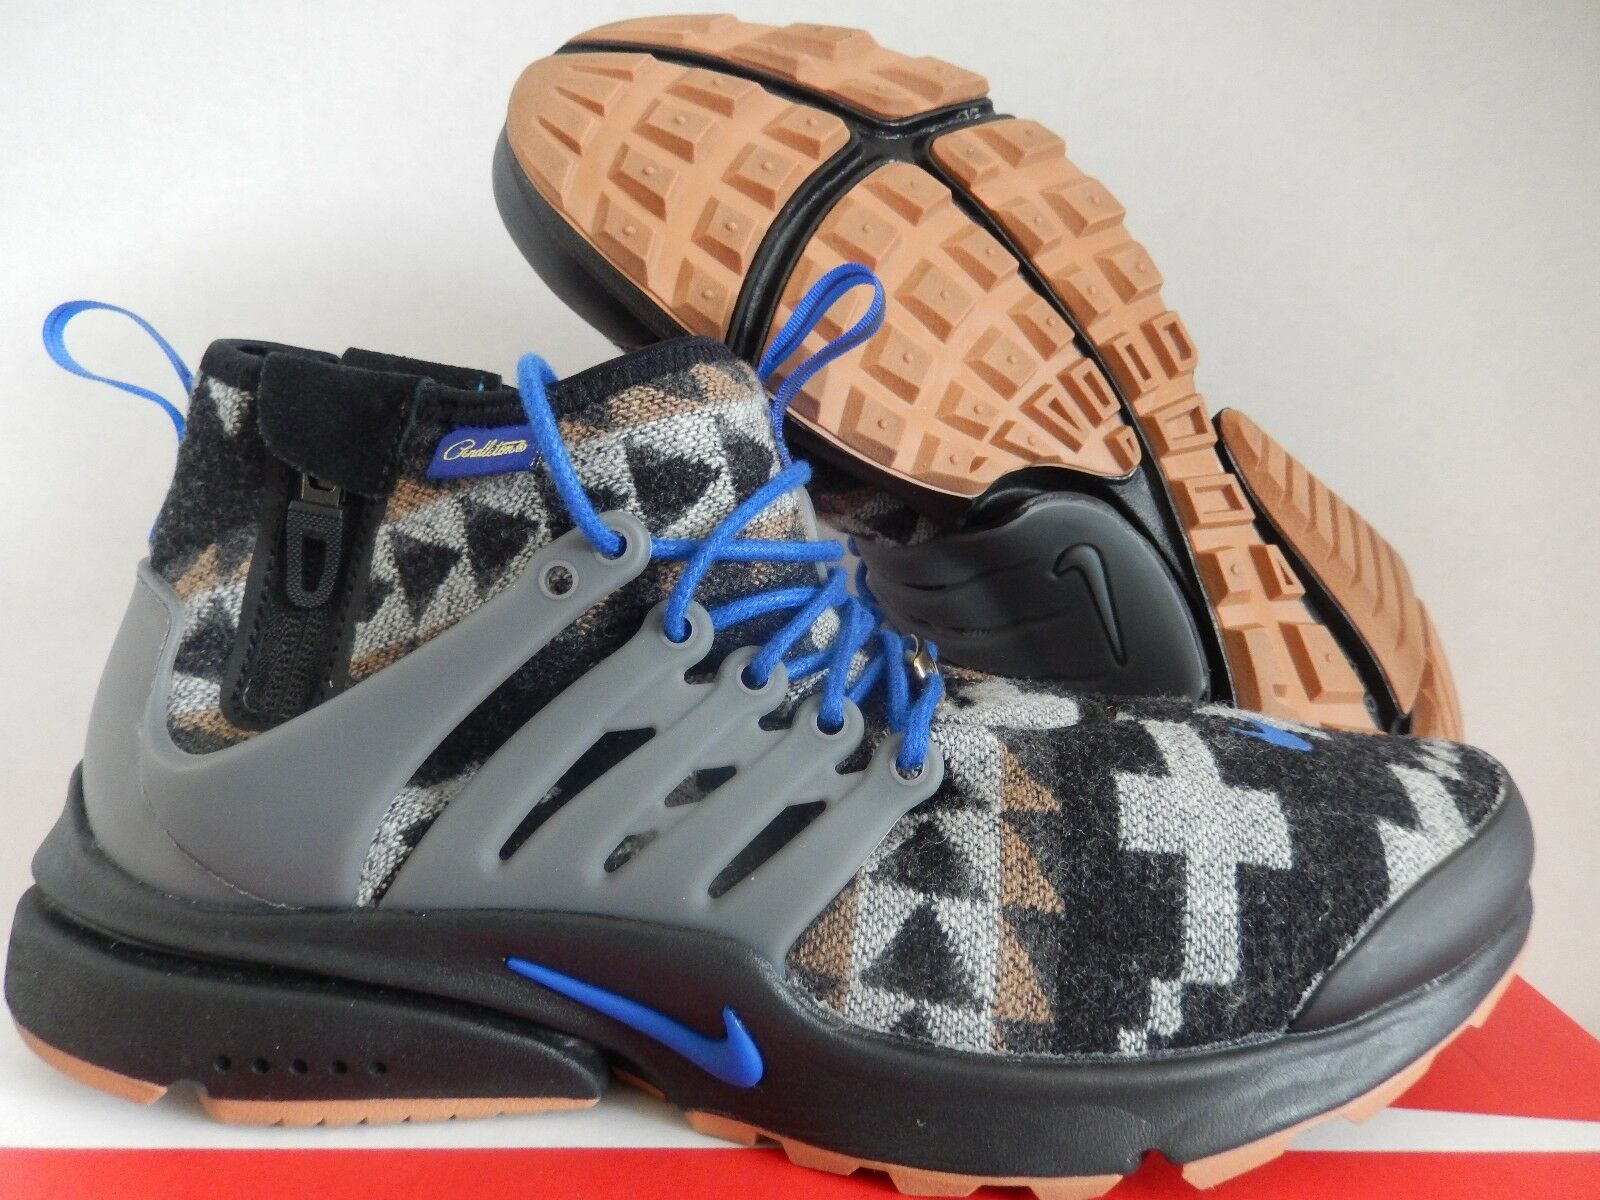 NIKE AIR PRESTO PENDLETON ID BLACK-BROWN-GUM BROWN SZ 9 [916580-991]